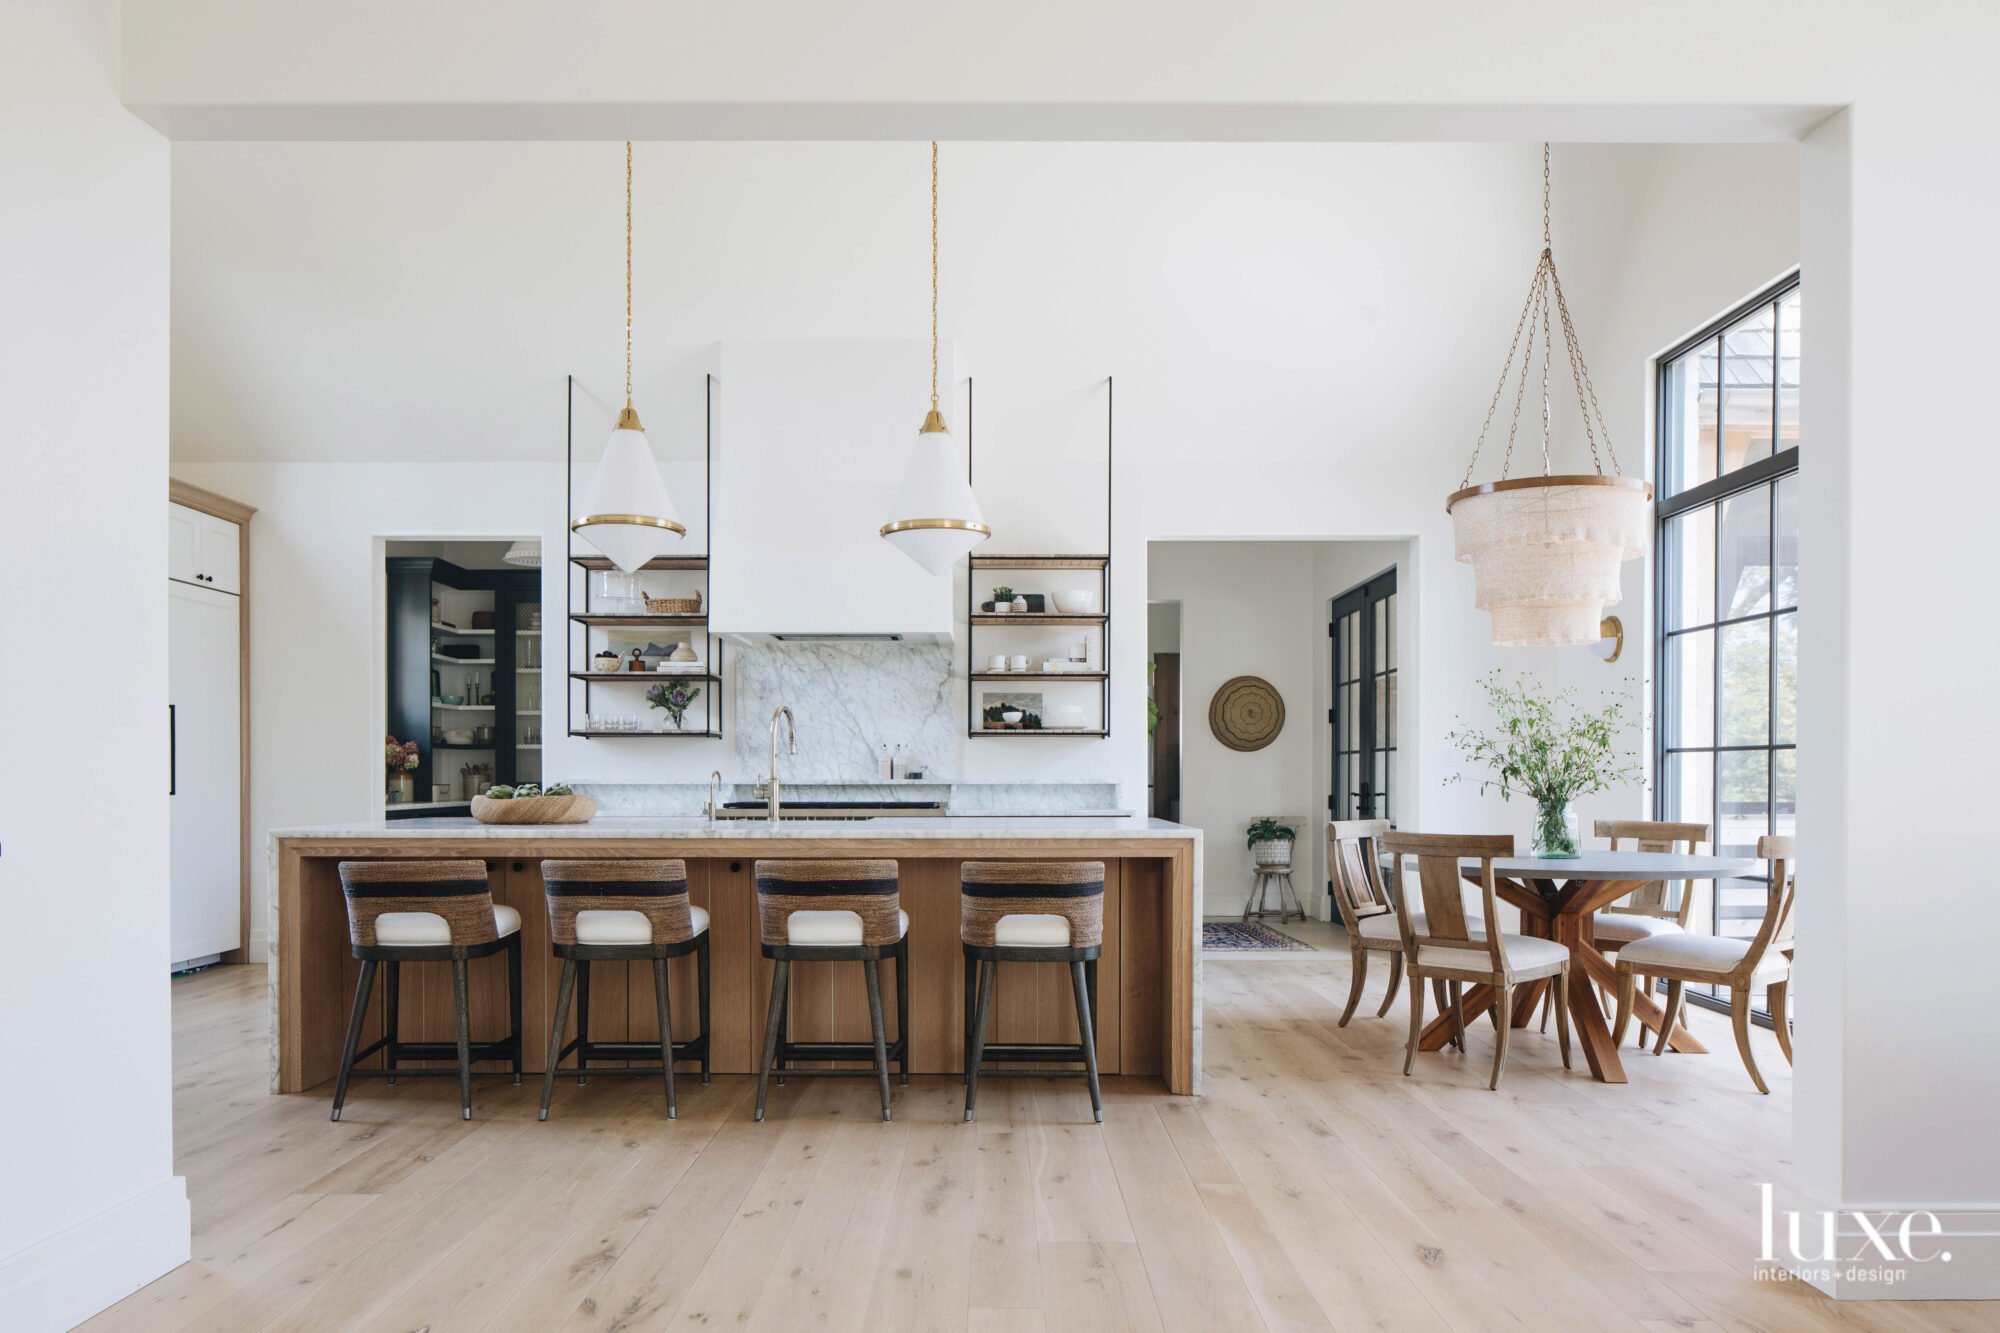 This huge yet simple kitchen...